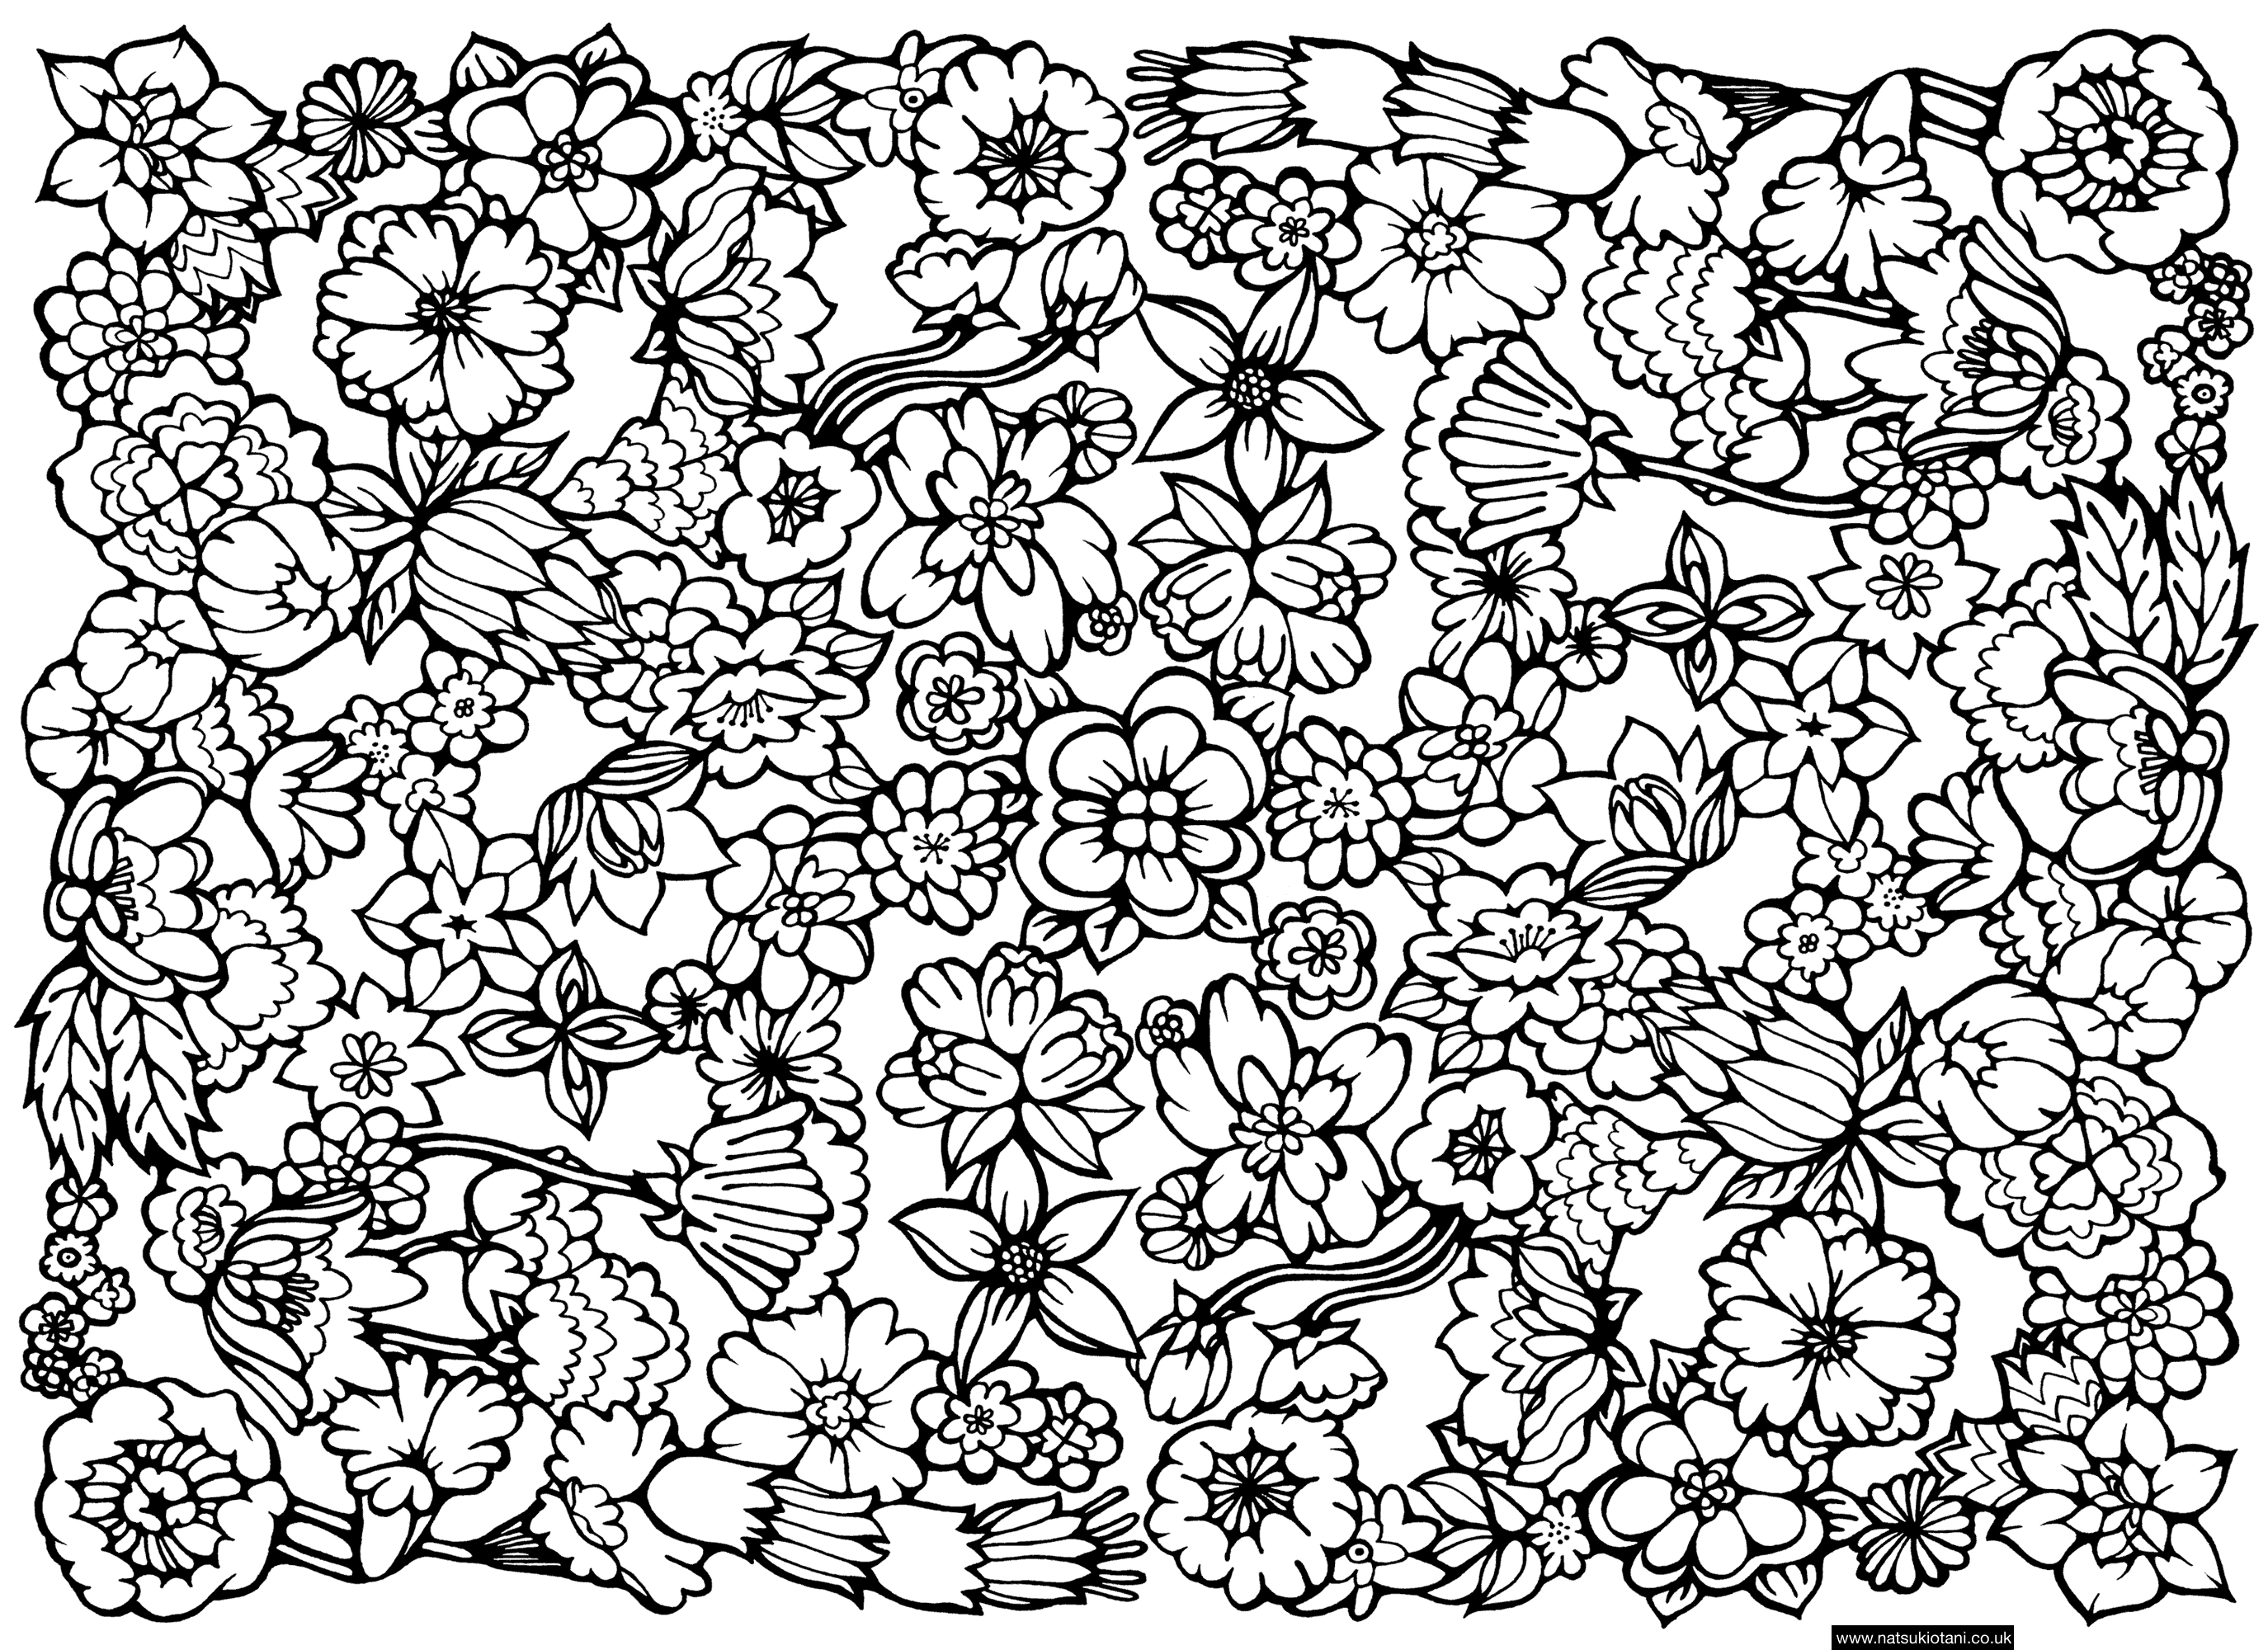 It Crowd coloring #11, Download drawings